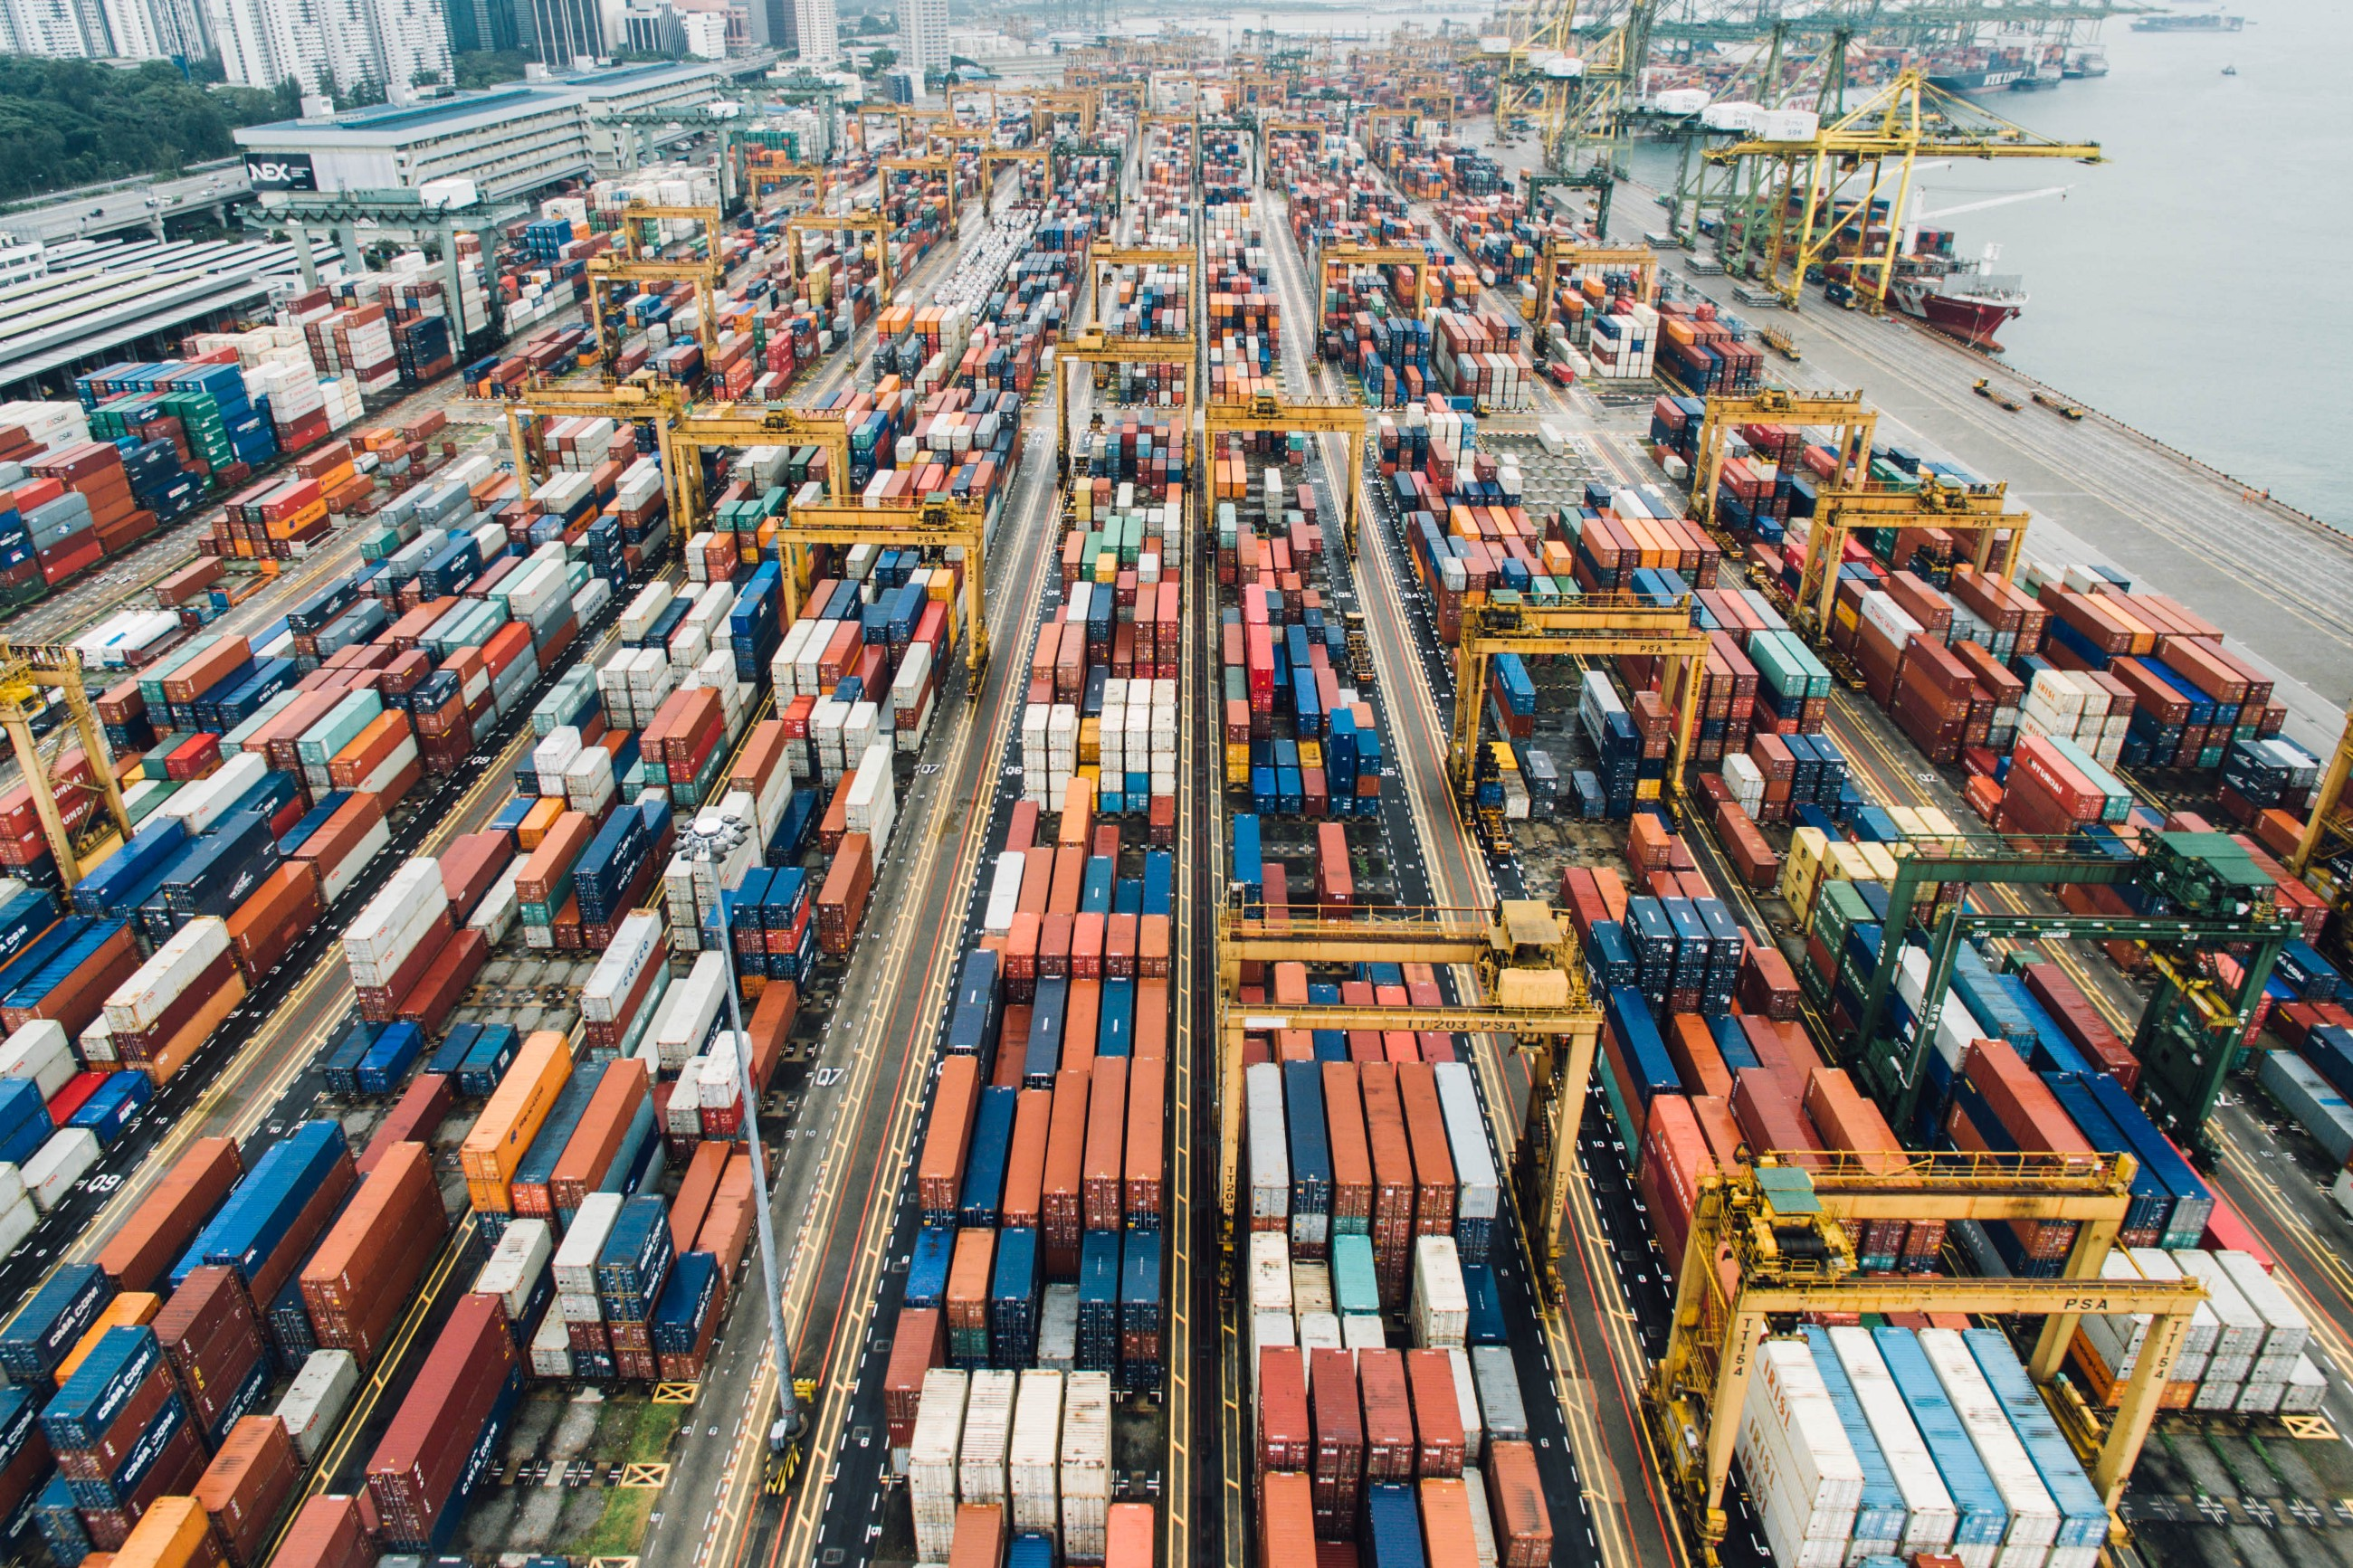 """A large number of shipping containers"" by chuttersnap on Unsplash"